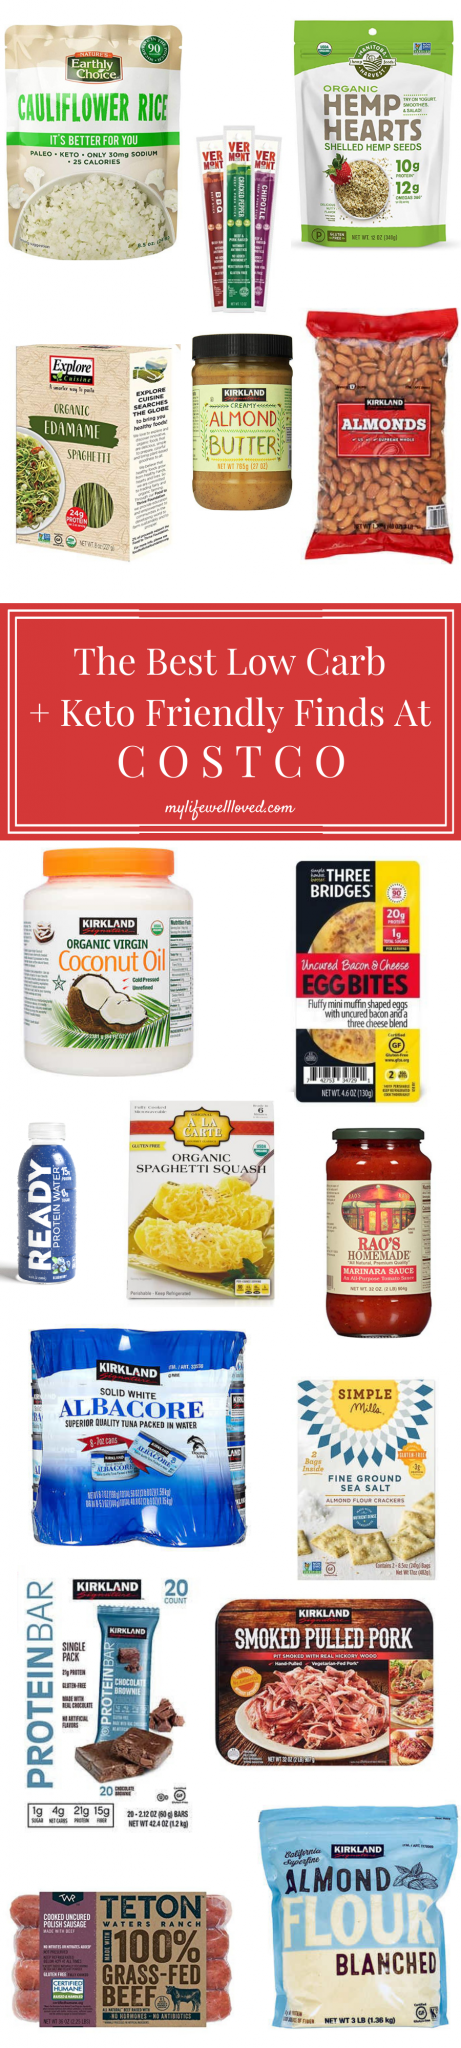 Top 22 Costco Low Carb Foods by Alabama Life + Style Blogger, Heather Brown // My Life Well Loved